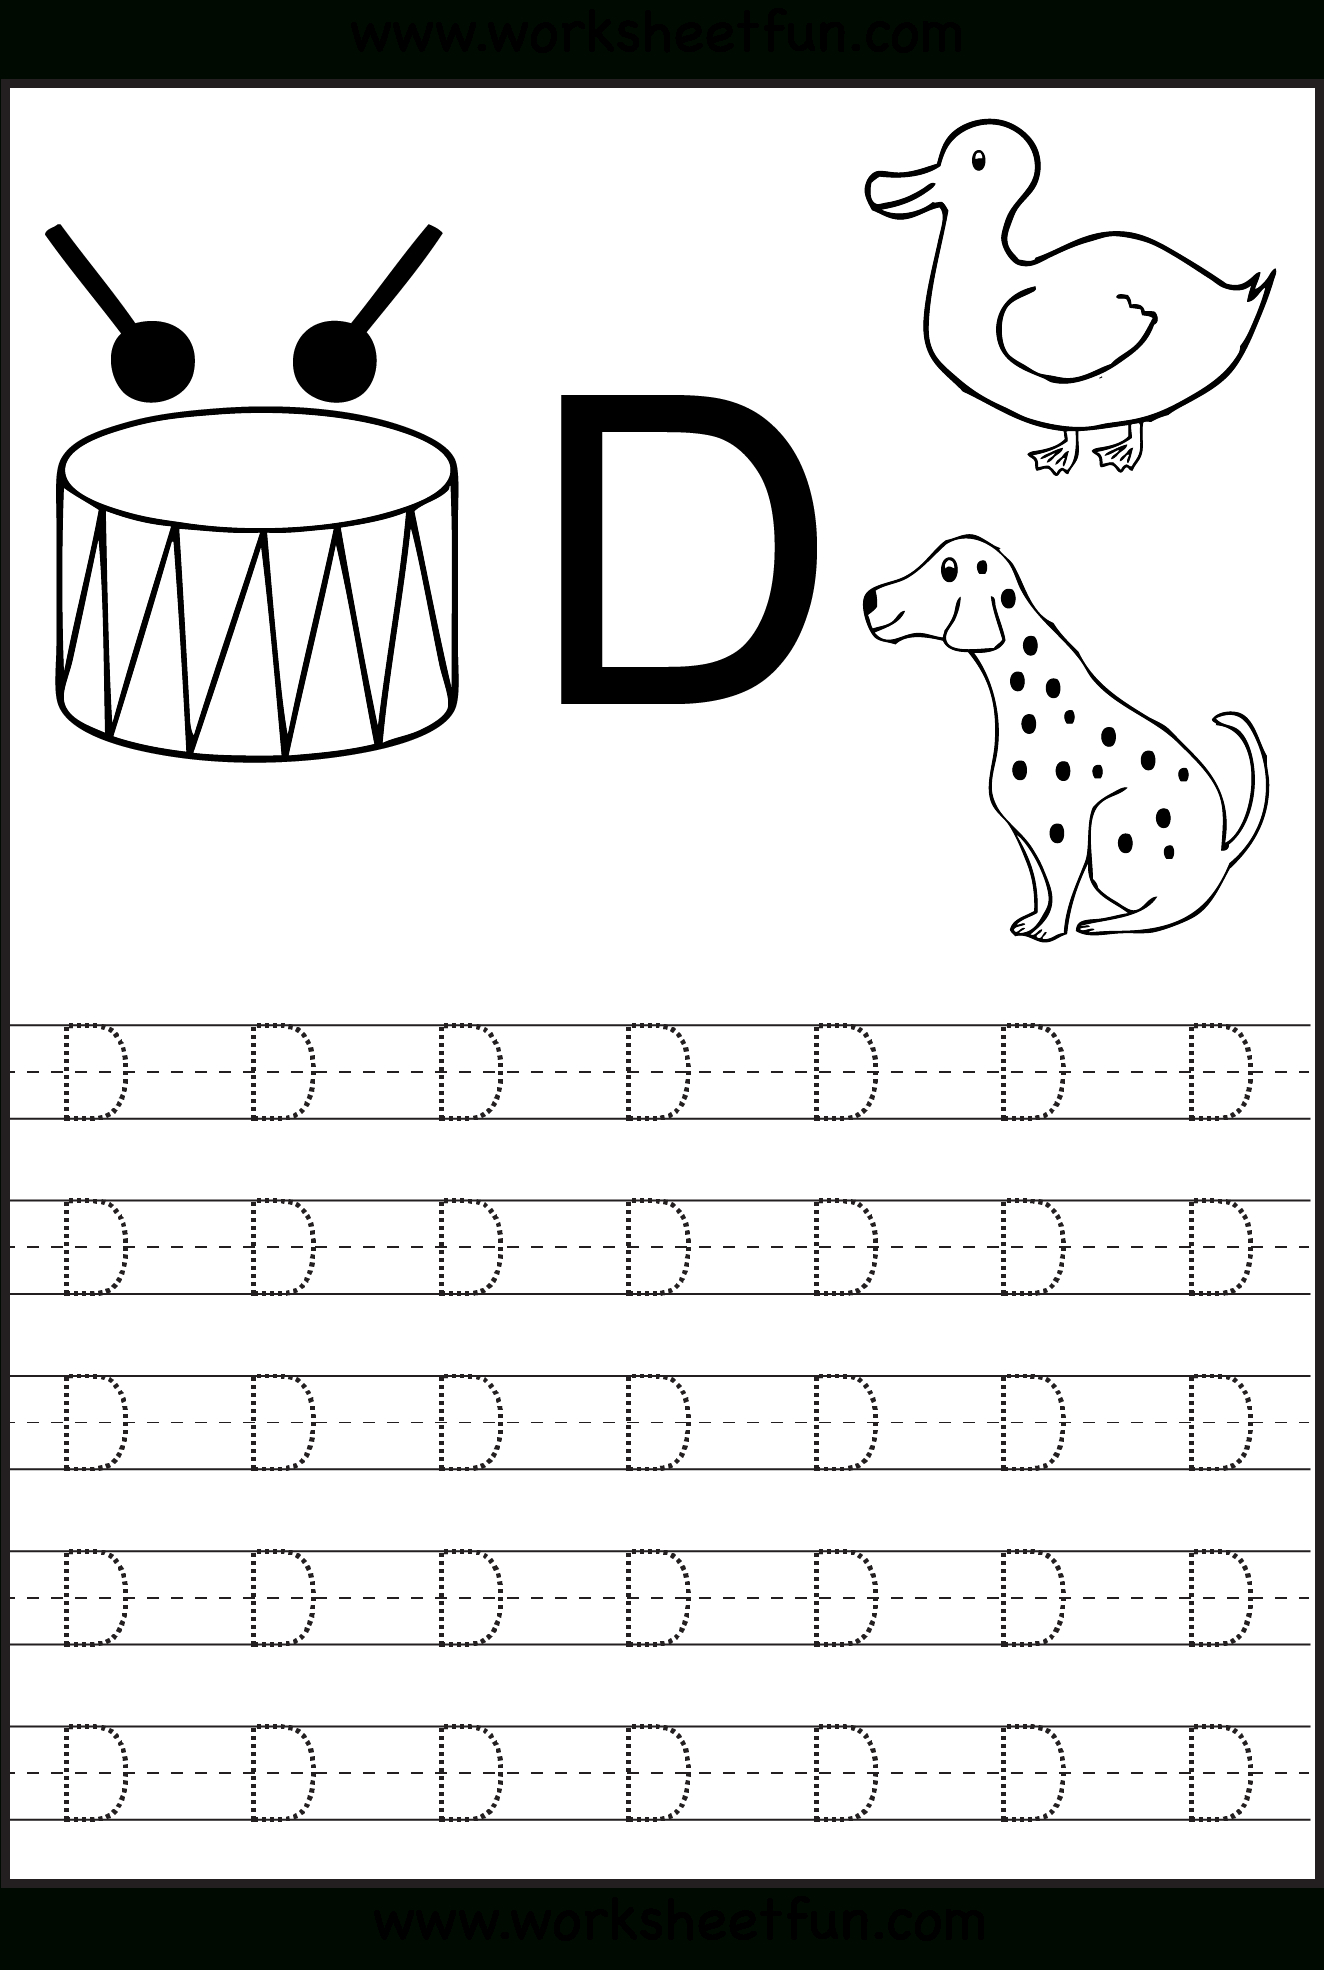 Free Printable Worksheets - Contents | Alphabet Tracing in Alphabet D Tracing Sheet